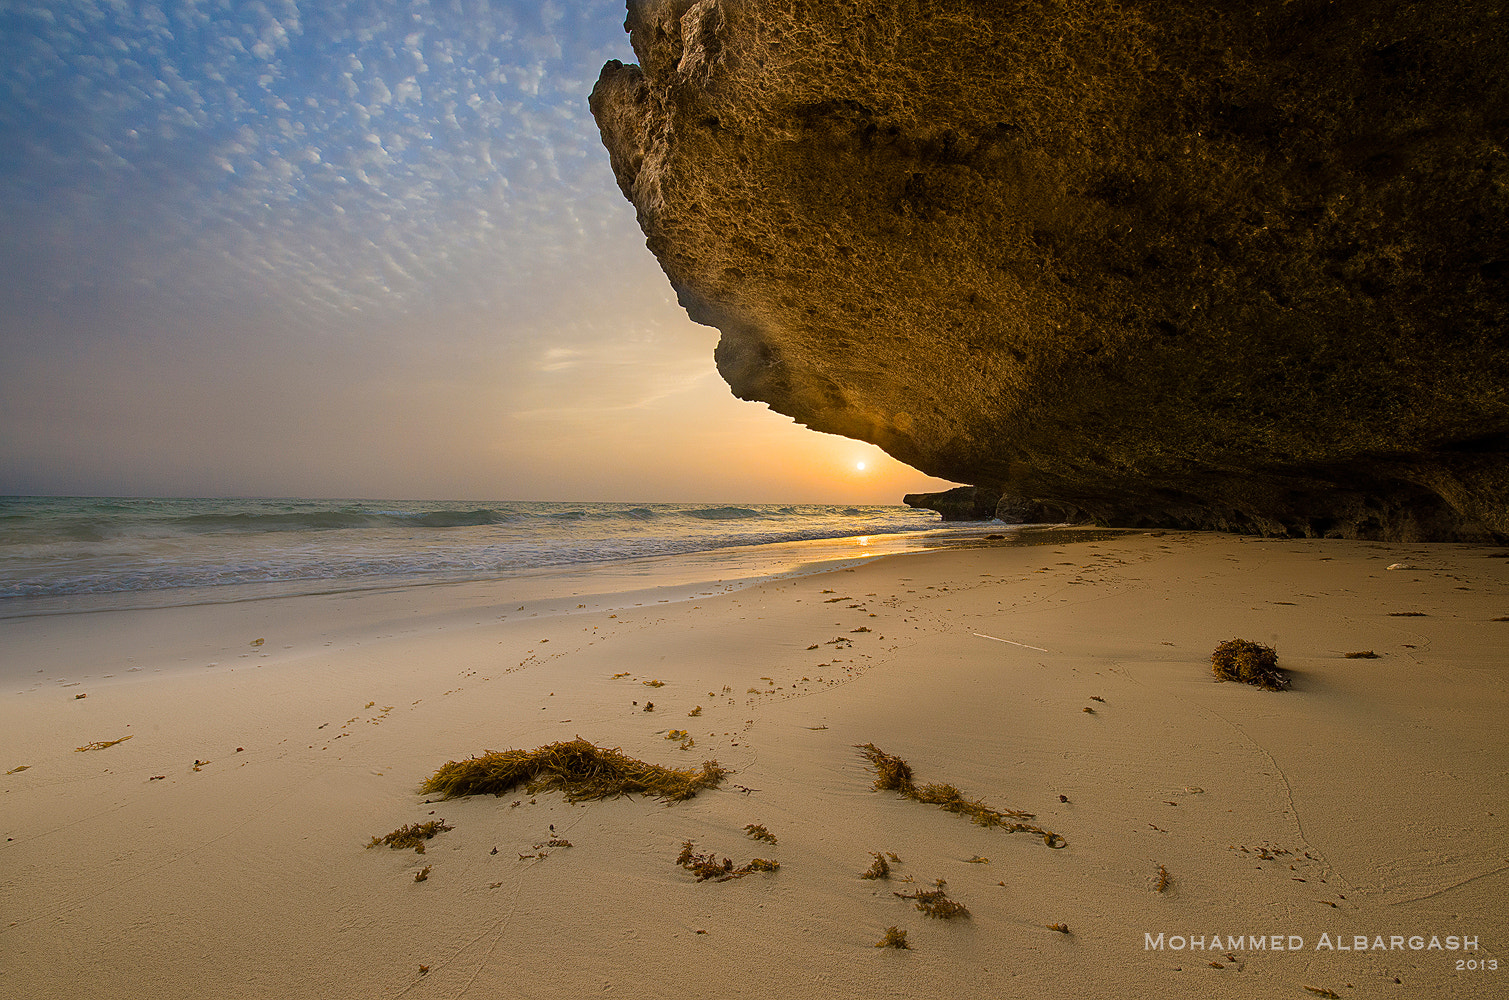 Photograph Beach janaabah by mohammed albargash on 500px